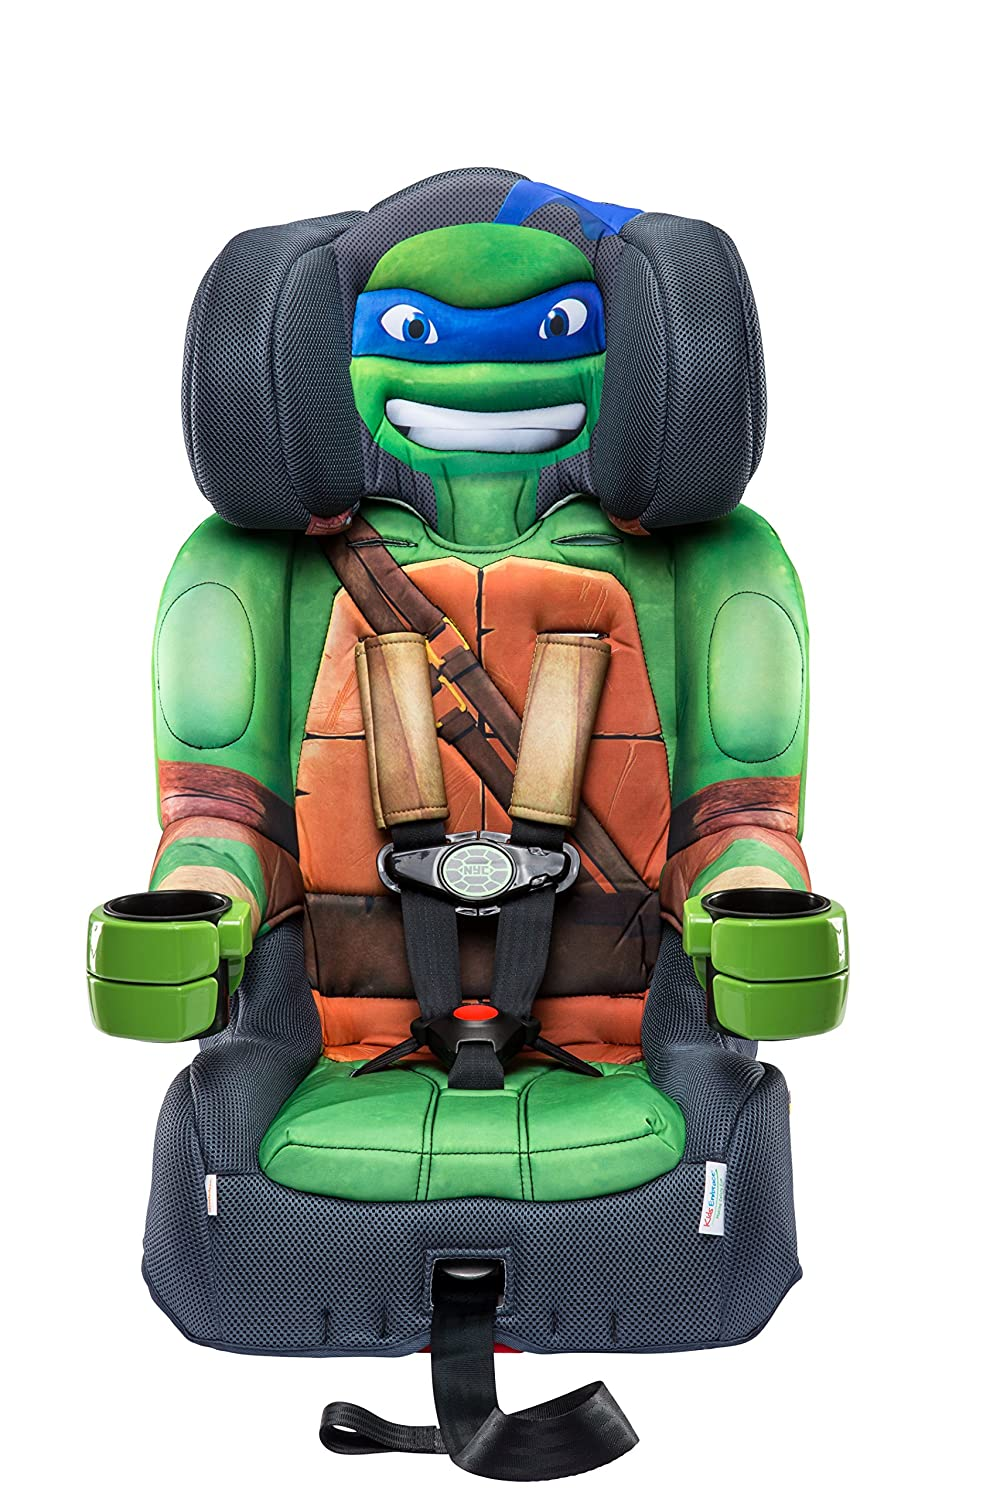 nickelodeon kidsembrace combination toddler harness booster car seat teenage mutant ninja. Black Bedroom Furniture Sets. Home Design Ideas